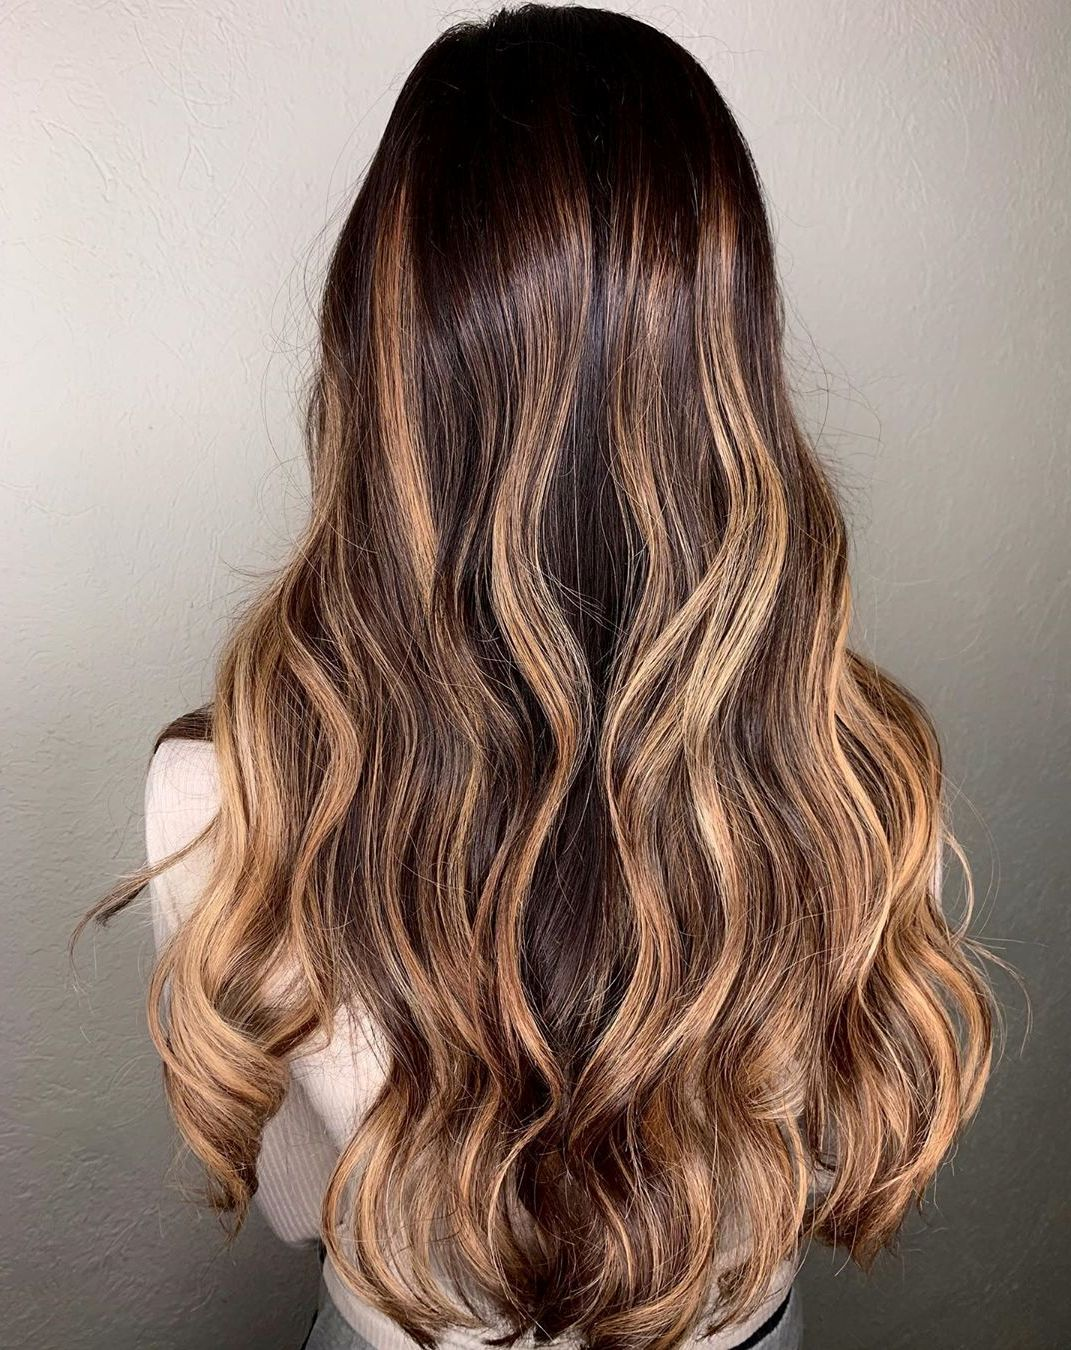 Caramel Blonde Highlights with Brunette Roots